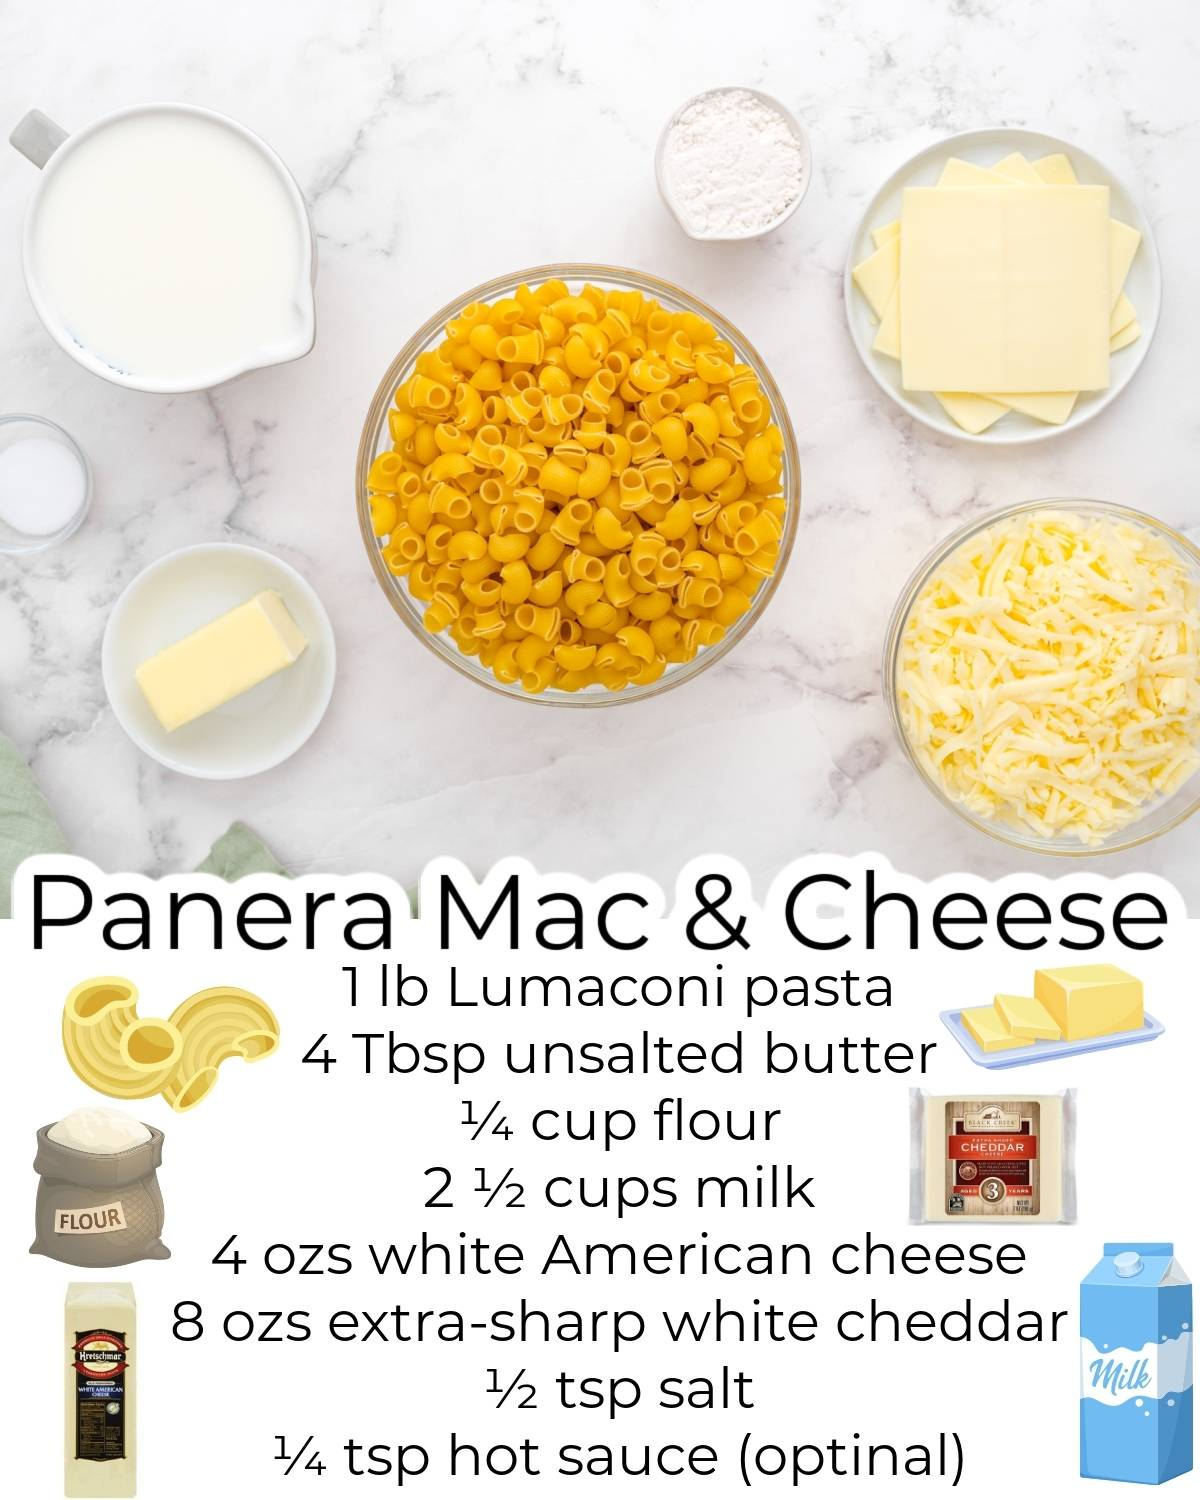 All of the ingredients needed to make this Copycat Panera Mac and Cheese recipe.